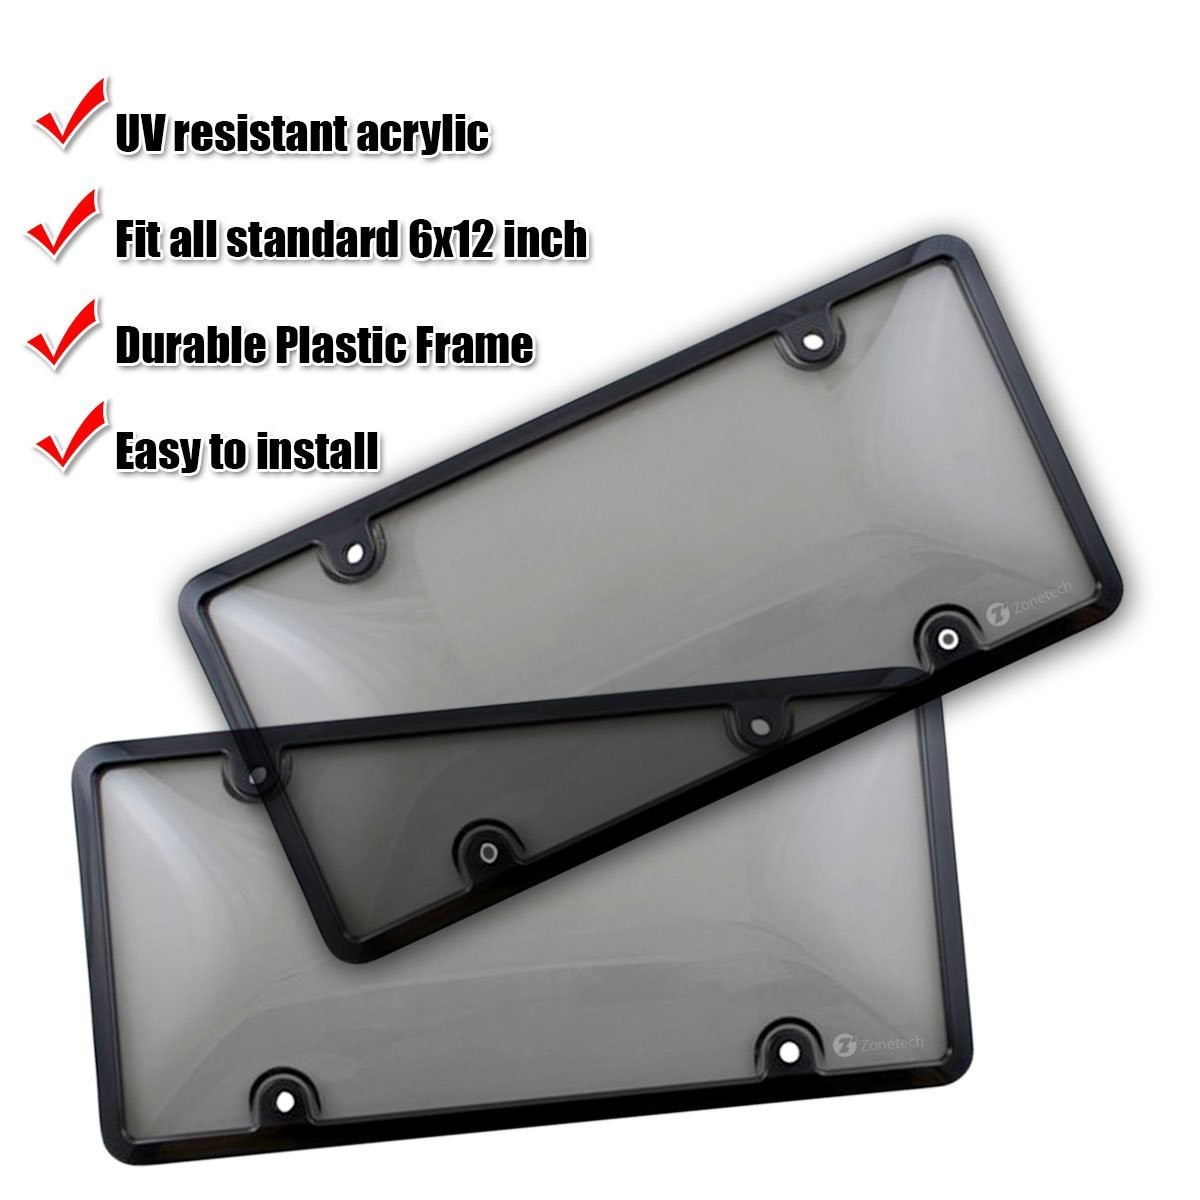 2# YUSHHO56T License Plate Cover External Modified Repair Tool Auto Car Plate Number License Tag Shield Clear Tinted Cover Acrylic Frame Screw